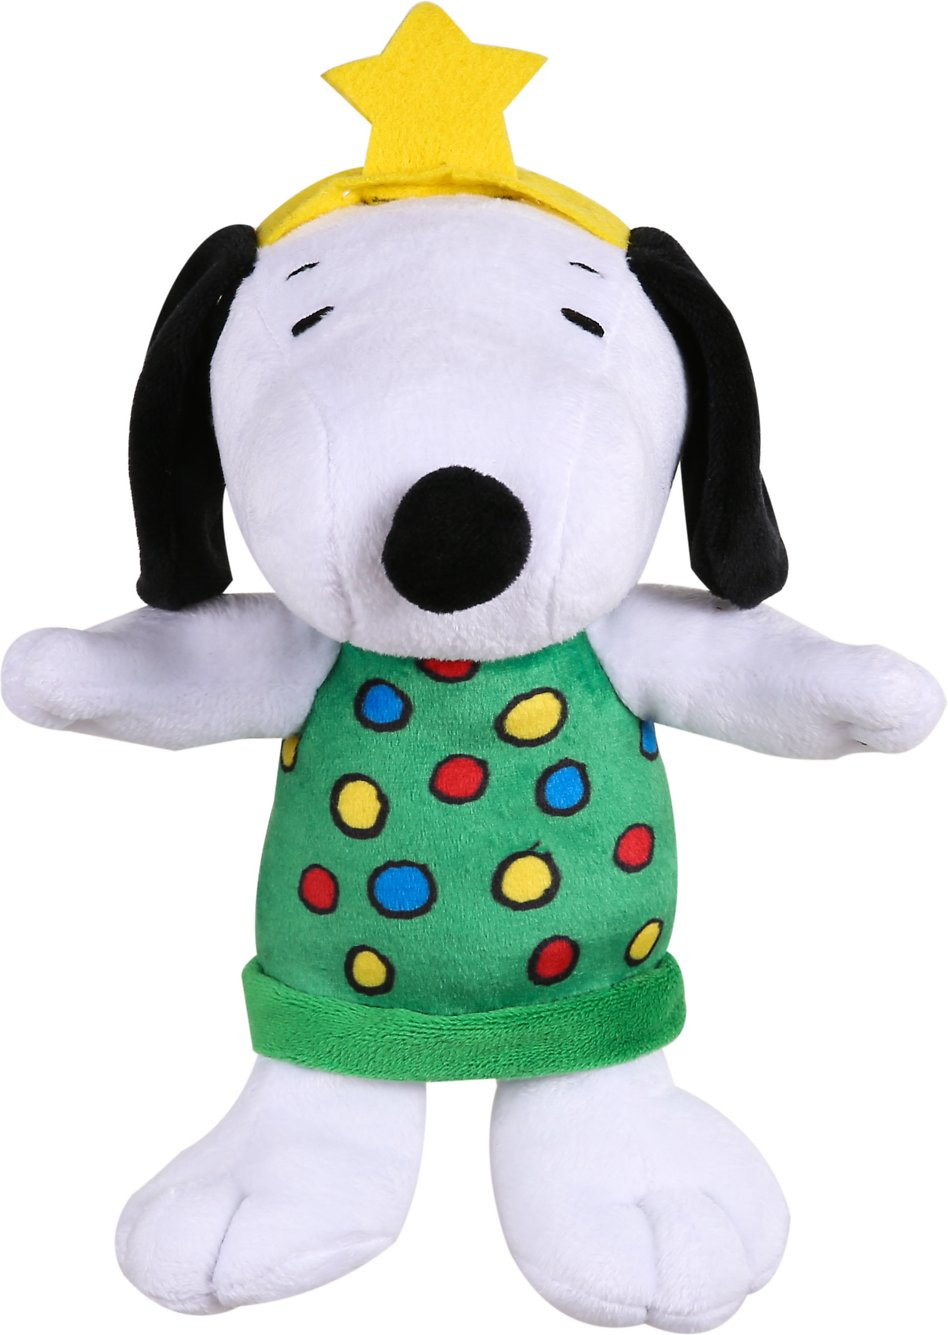 Peanuts Holiday Plush Toy 6